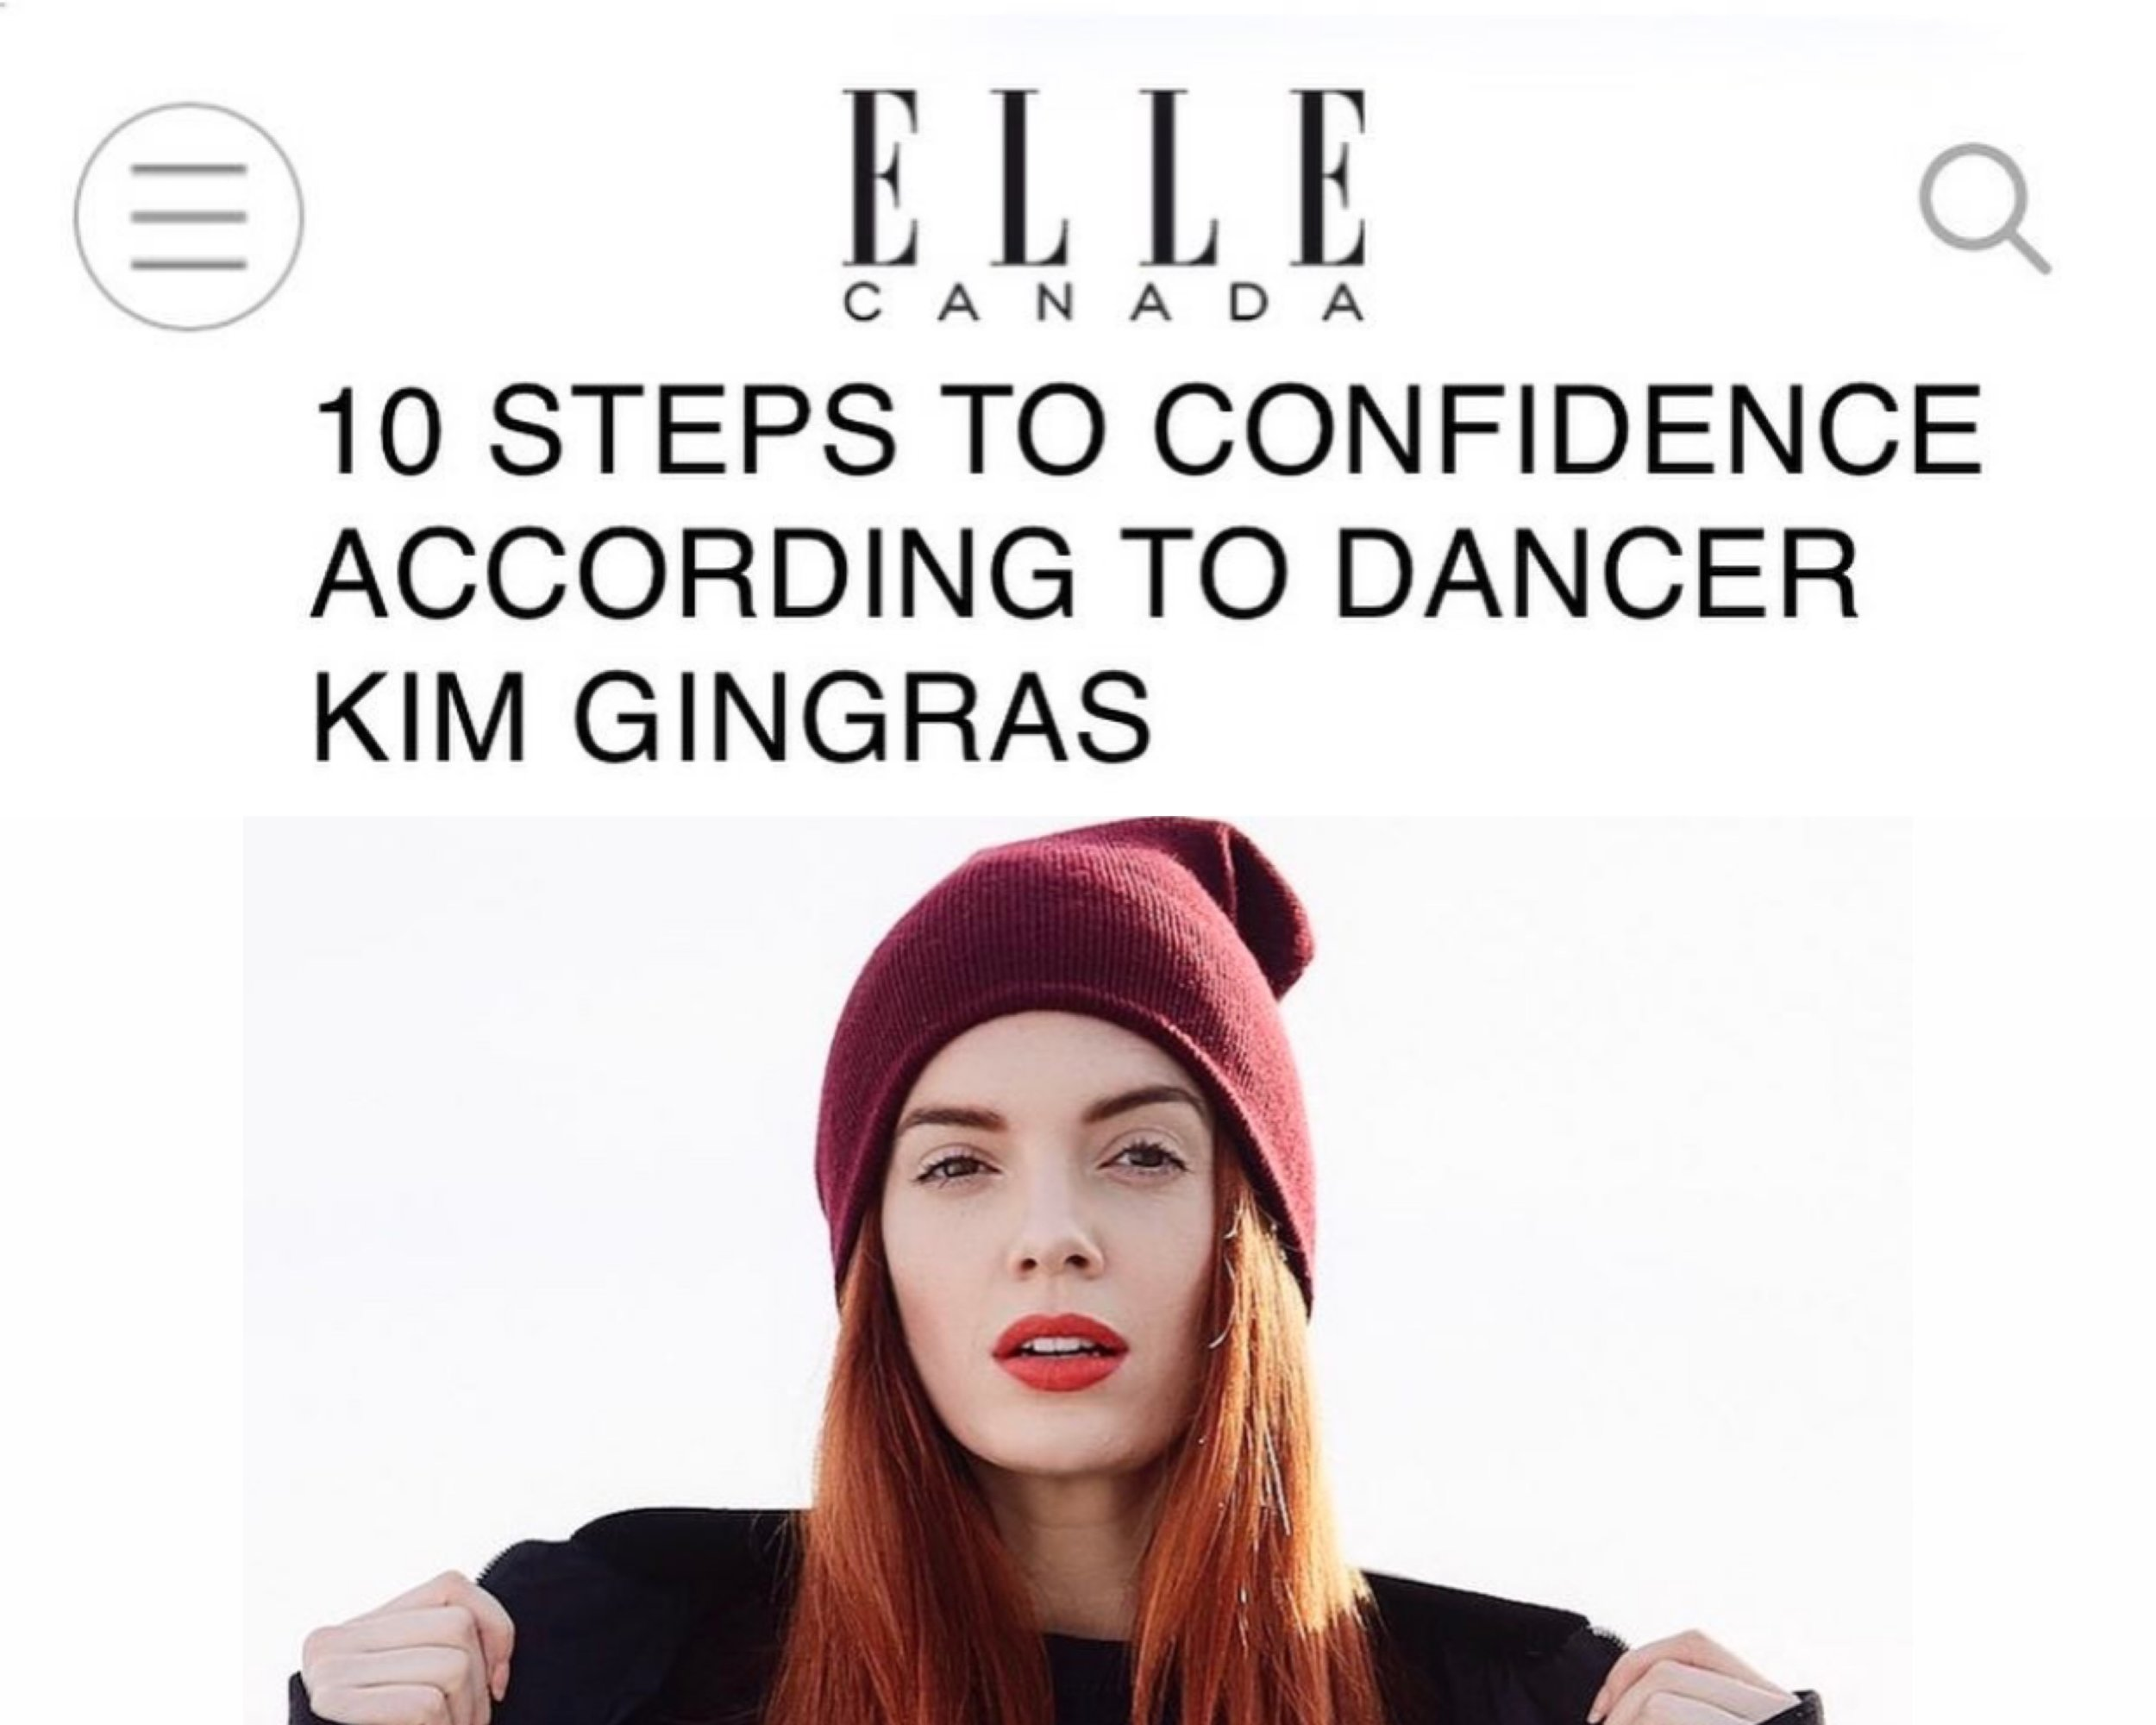 """ELLE CANADA - """"STEP 7: Have a strong support system. Be picky about who you surround yourself with because you're giving your energy, and your energy is precious. You need people that motivate you, uplift you, and challenge you on the daily."""""""